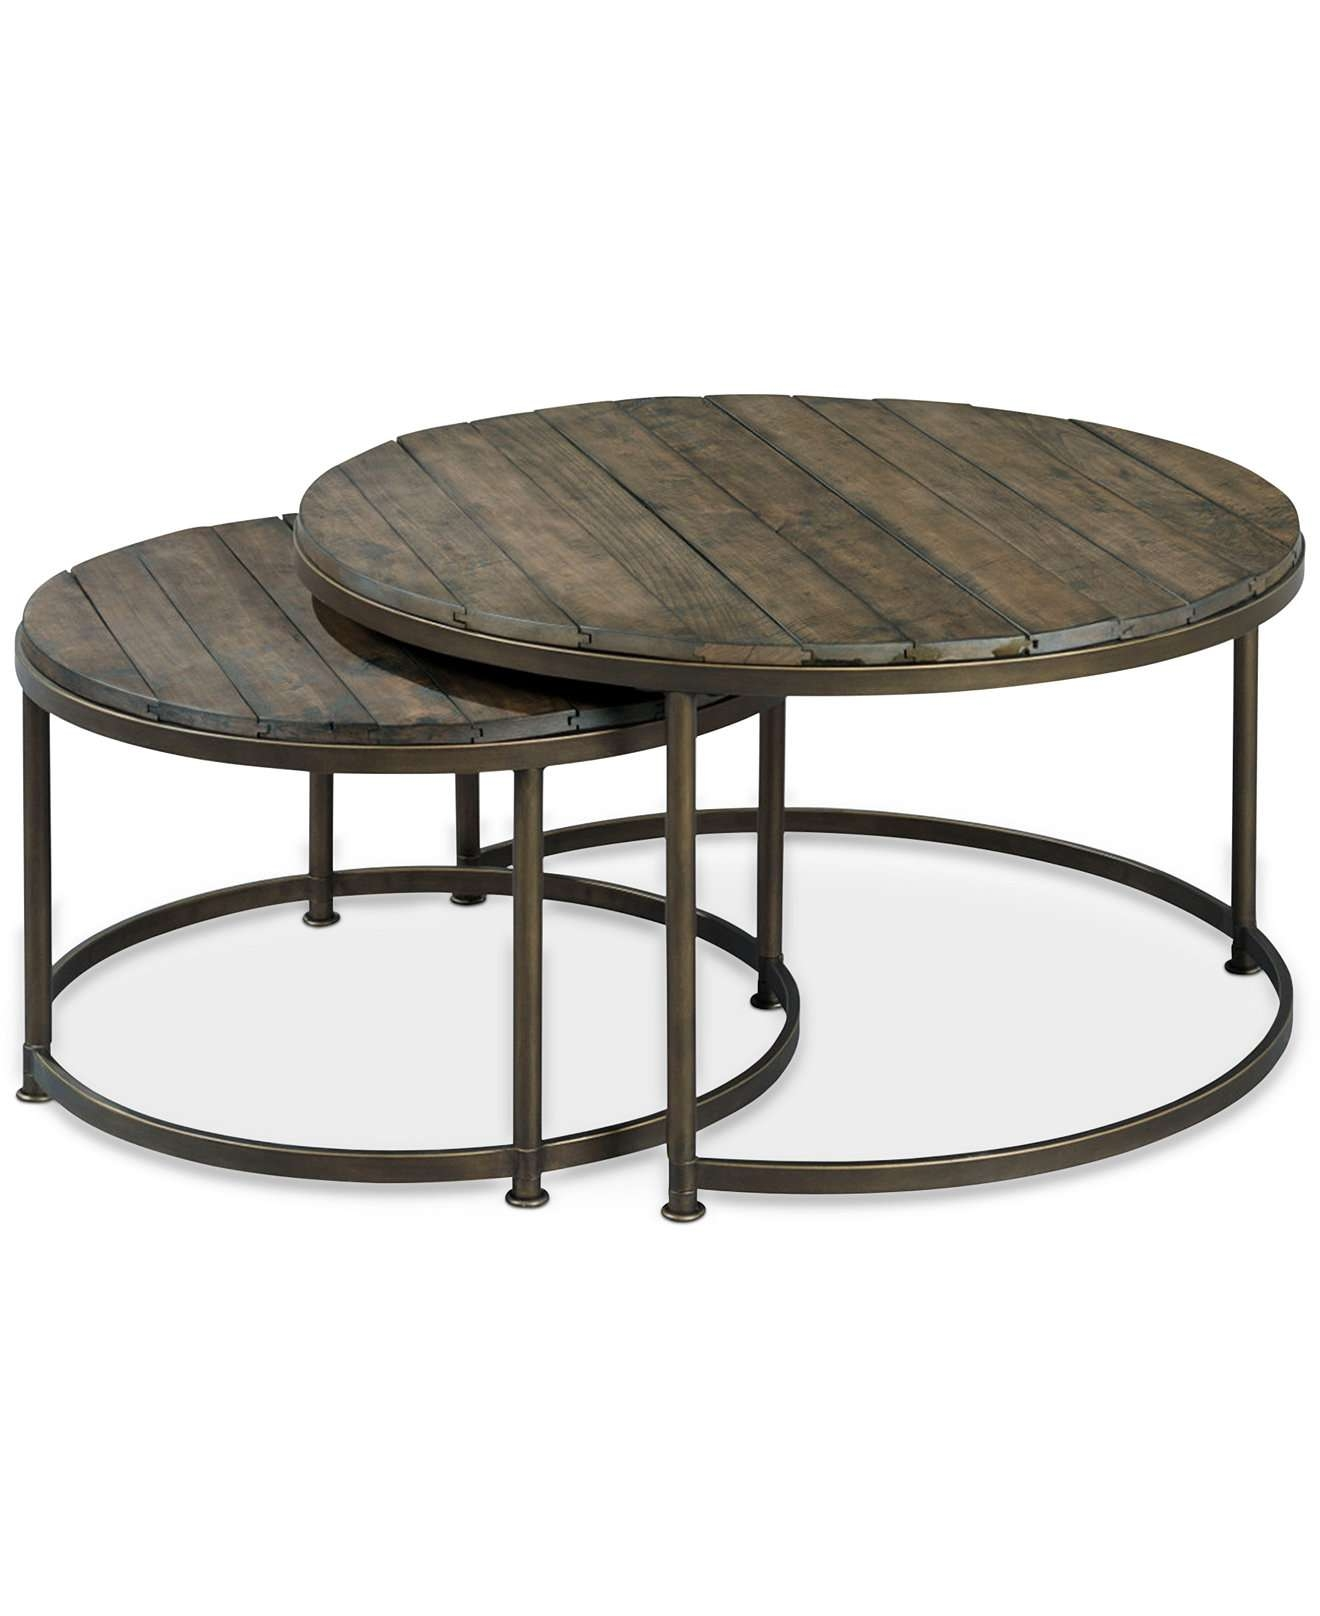 Coffee Tables : Coffee Table Stunning Metal Round Image Concept Inside Most Popular Gold Round Coffee Table (View 7 of 20)